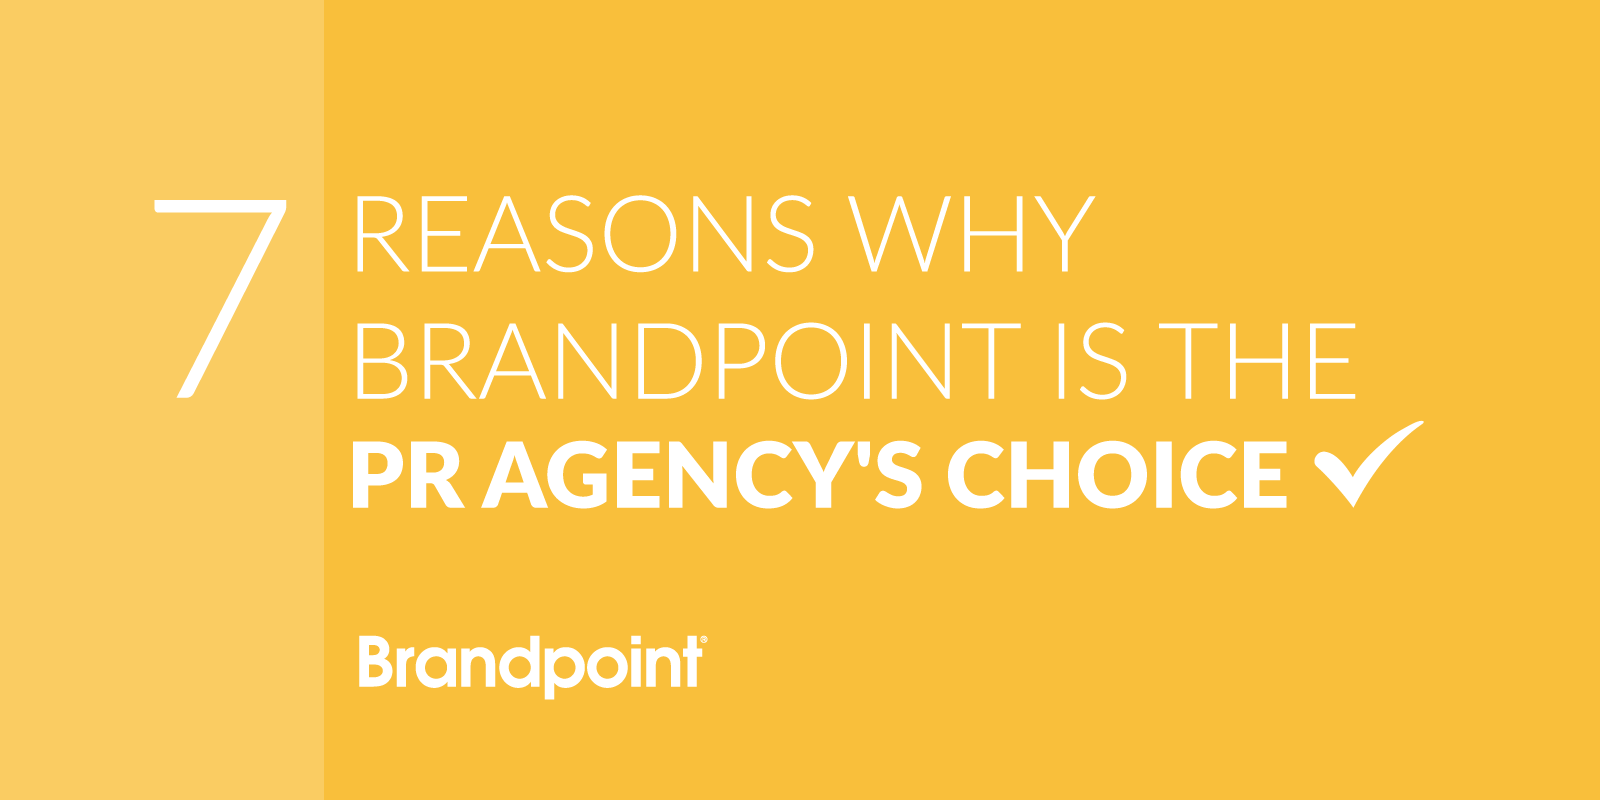 Brandpoint is the Agency's Choice